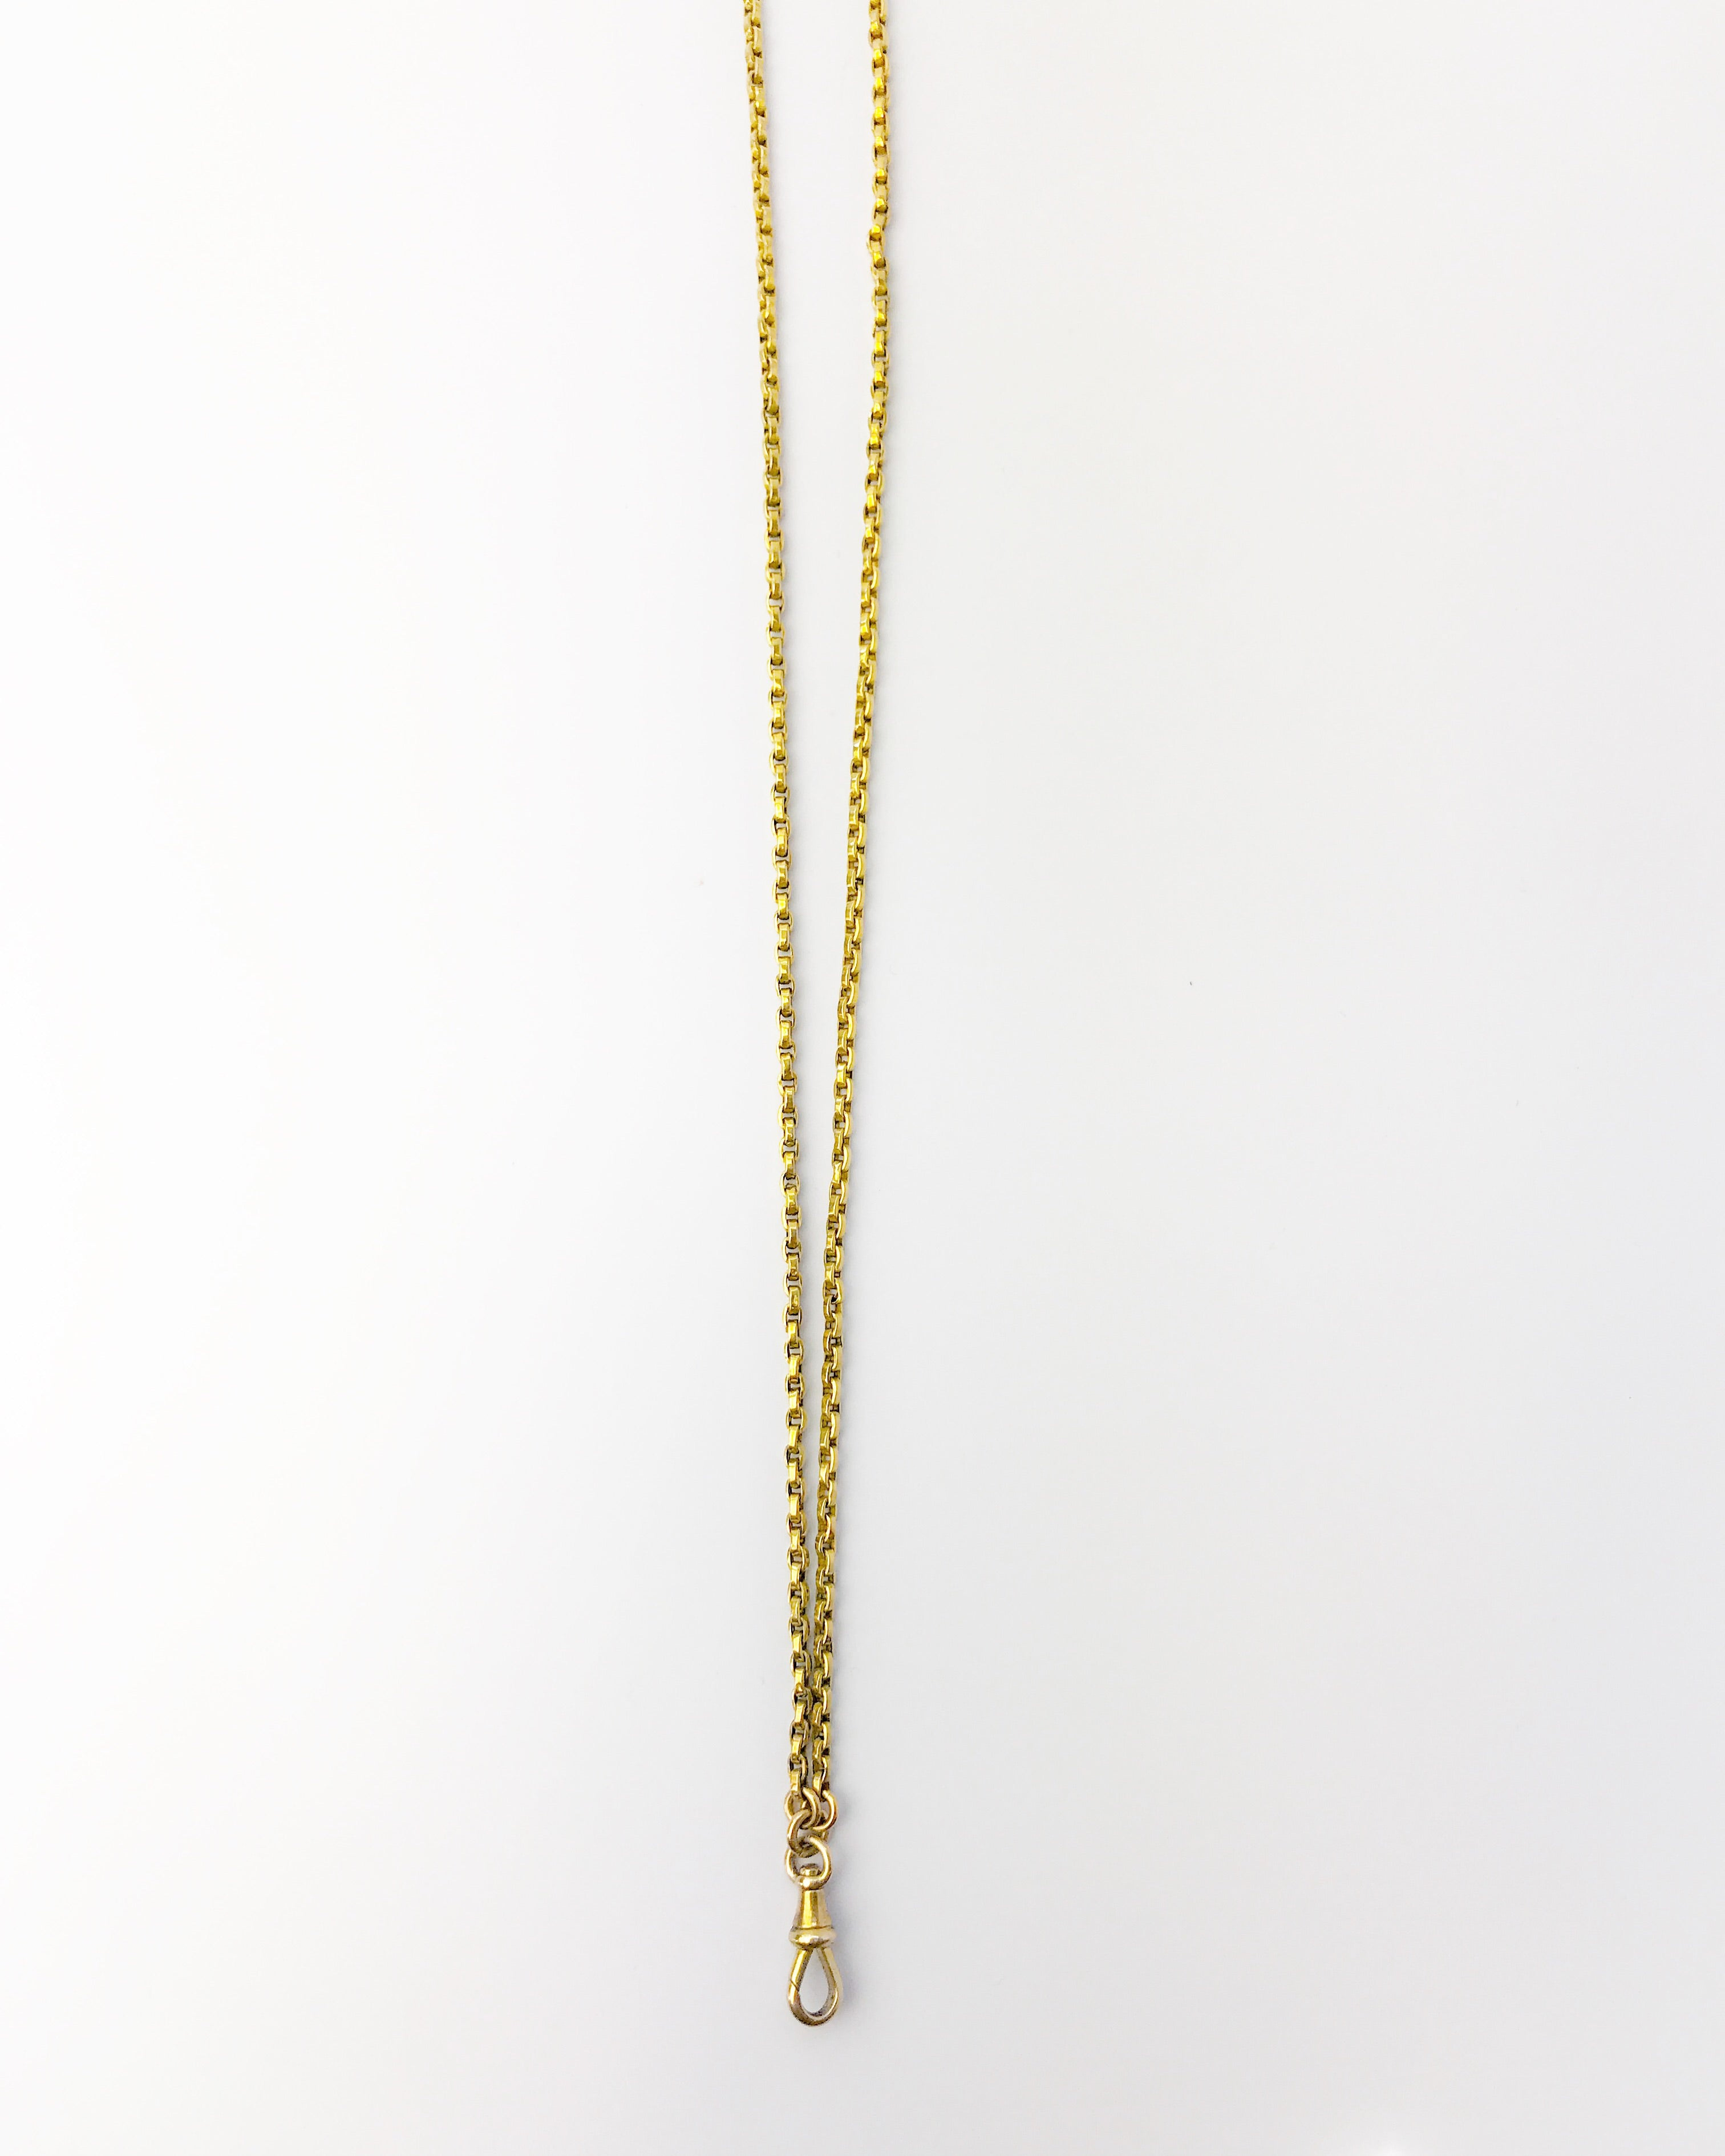 Antique Yellow Gold Chain w/Clasp 32""